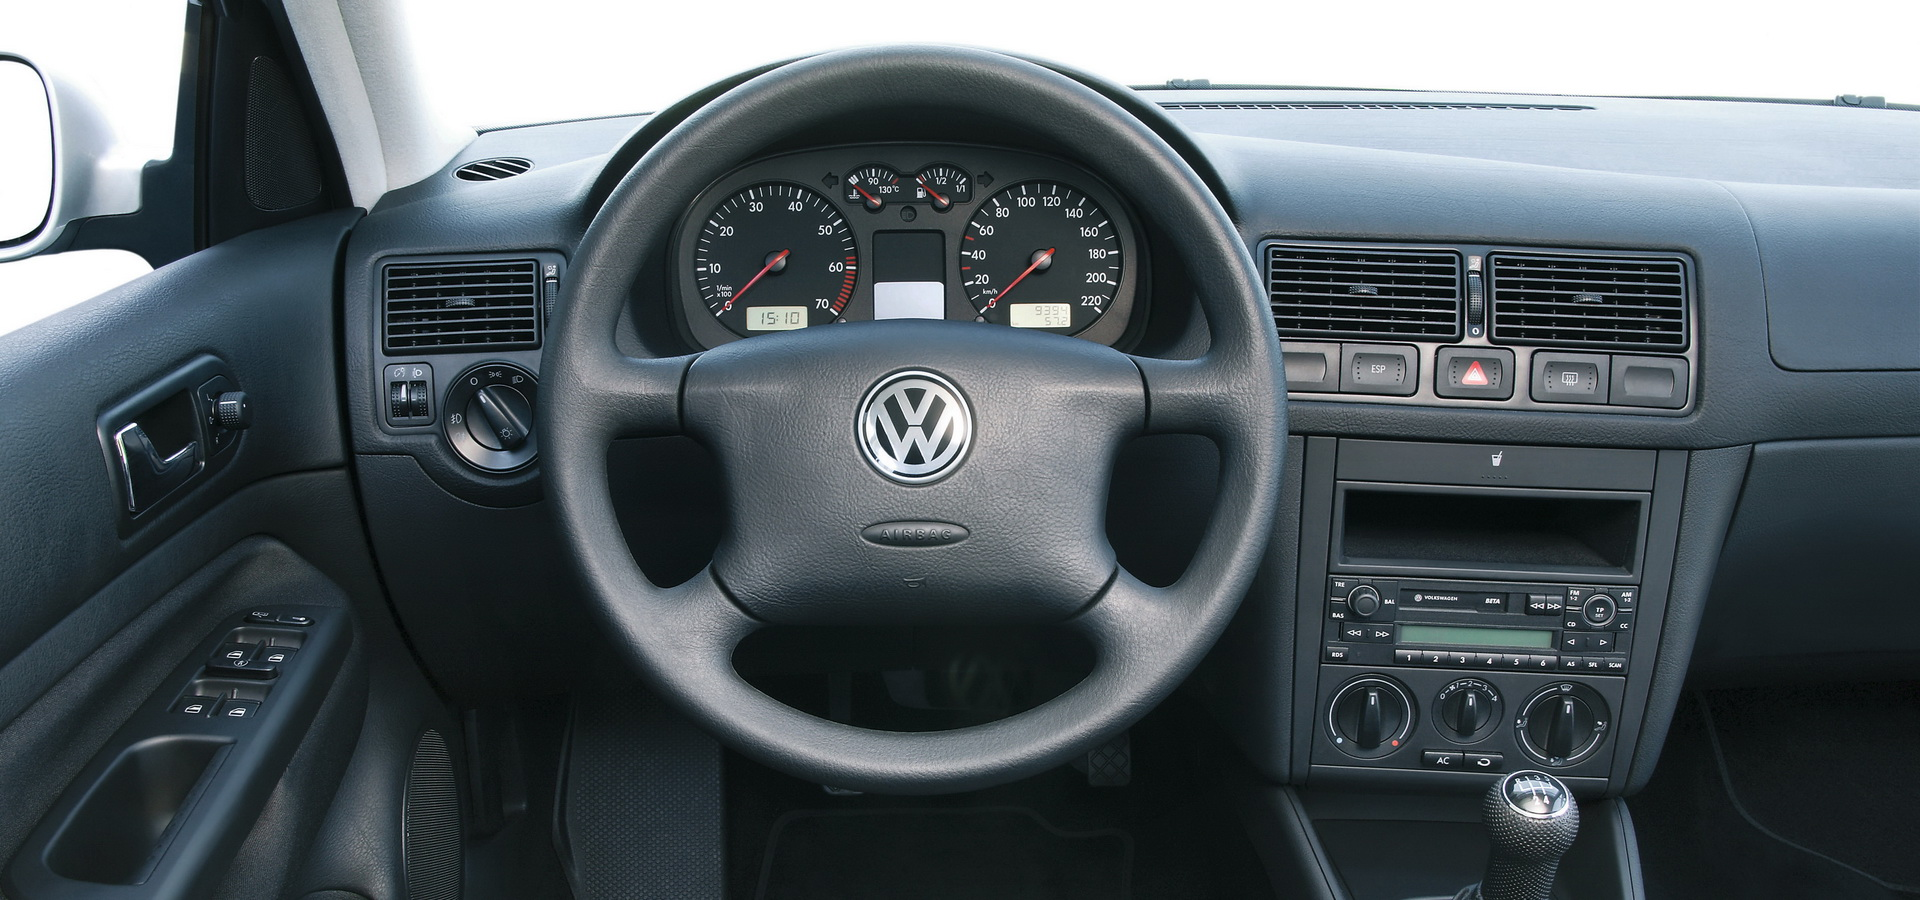 vw golf countdown 1997 2003 mk4 introduced a high quality interior esc and dsg carscoops vw golf countdown 1997 2003 mk4